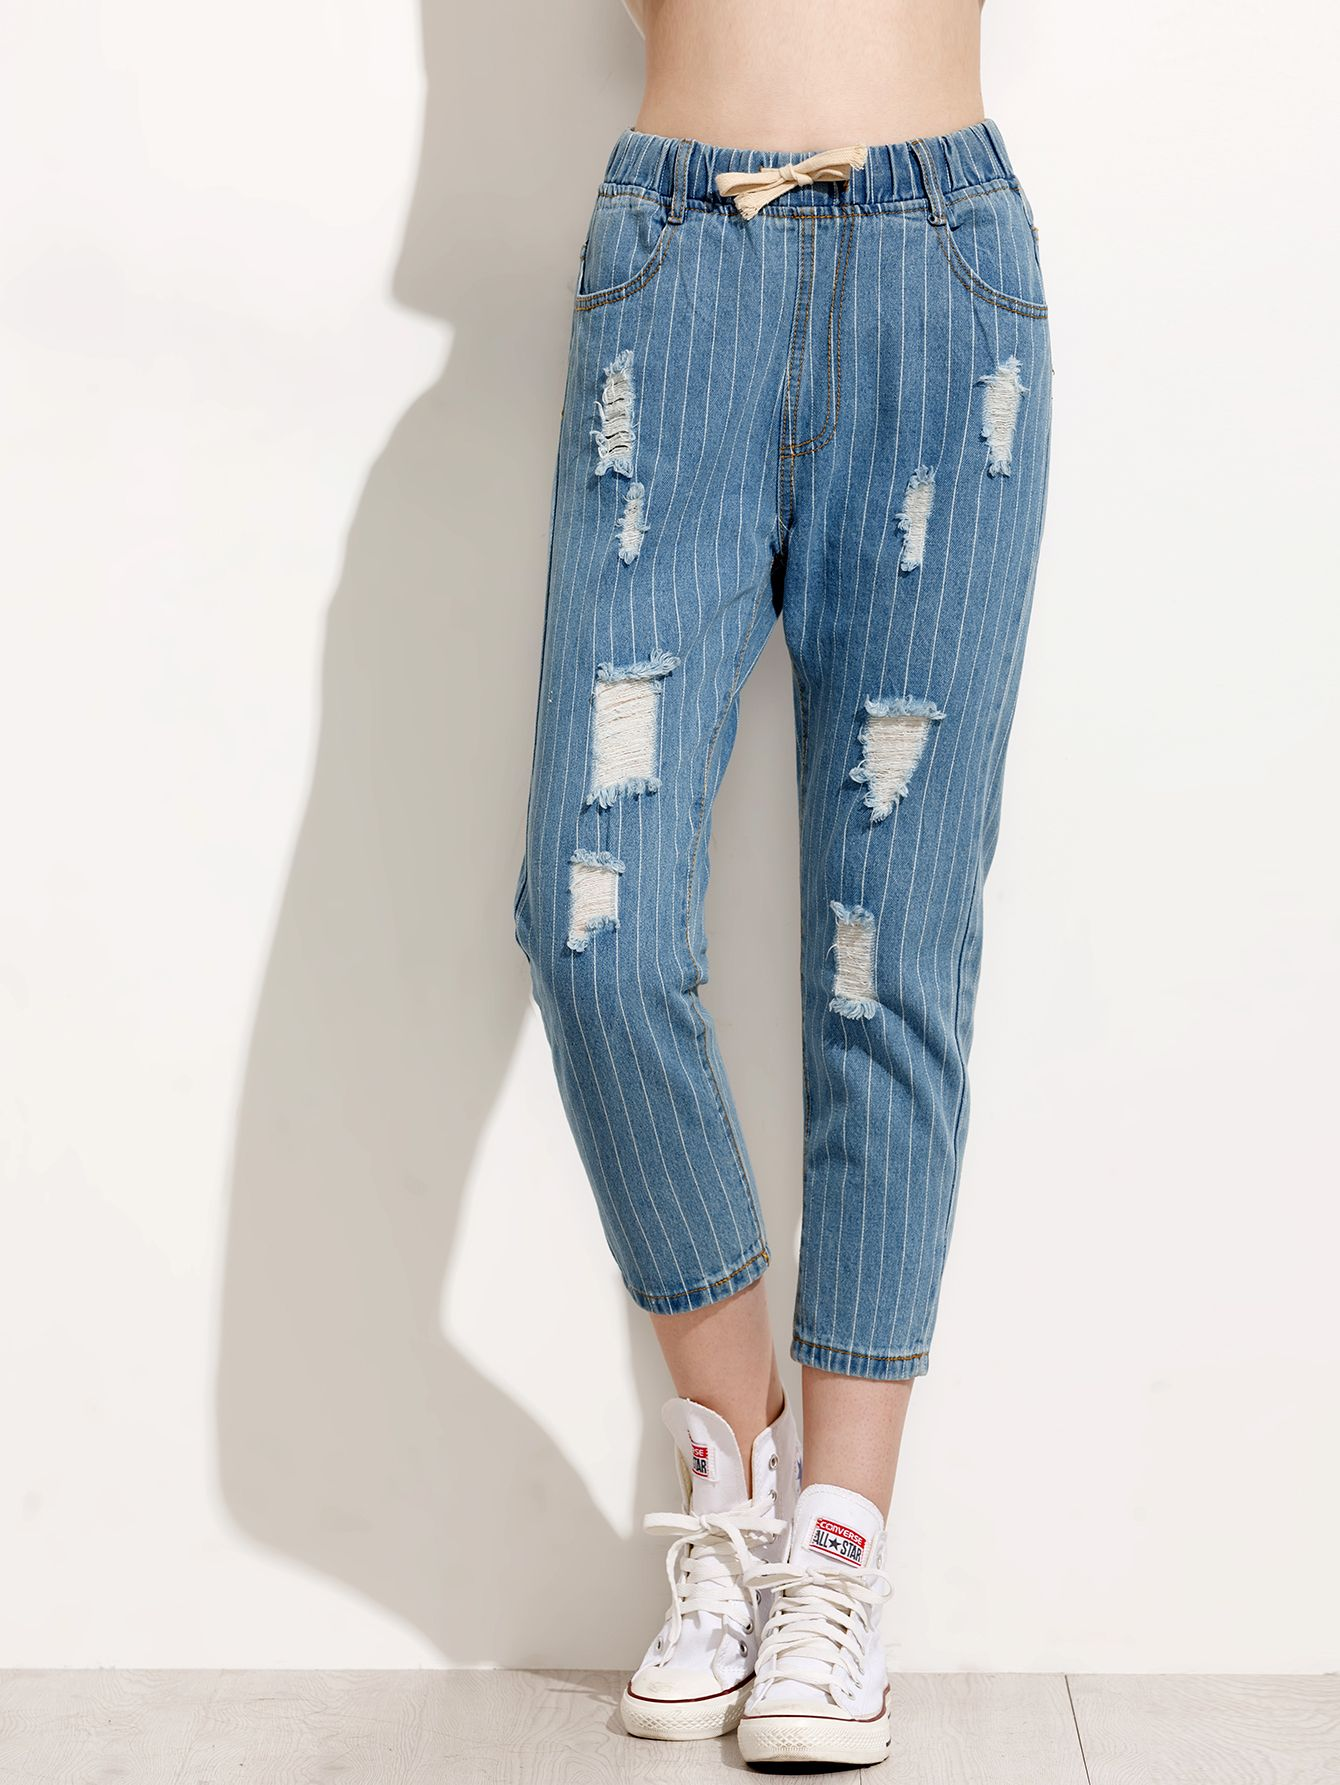 Blue Vertical Striped Ripped Drawstring Waist Jeans — 0.00 € ----color: Blue size: L,M,S,XL